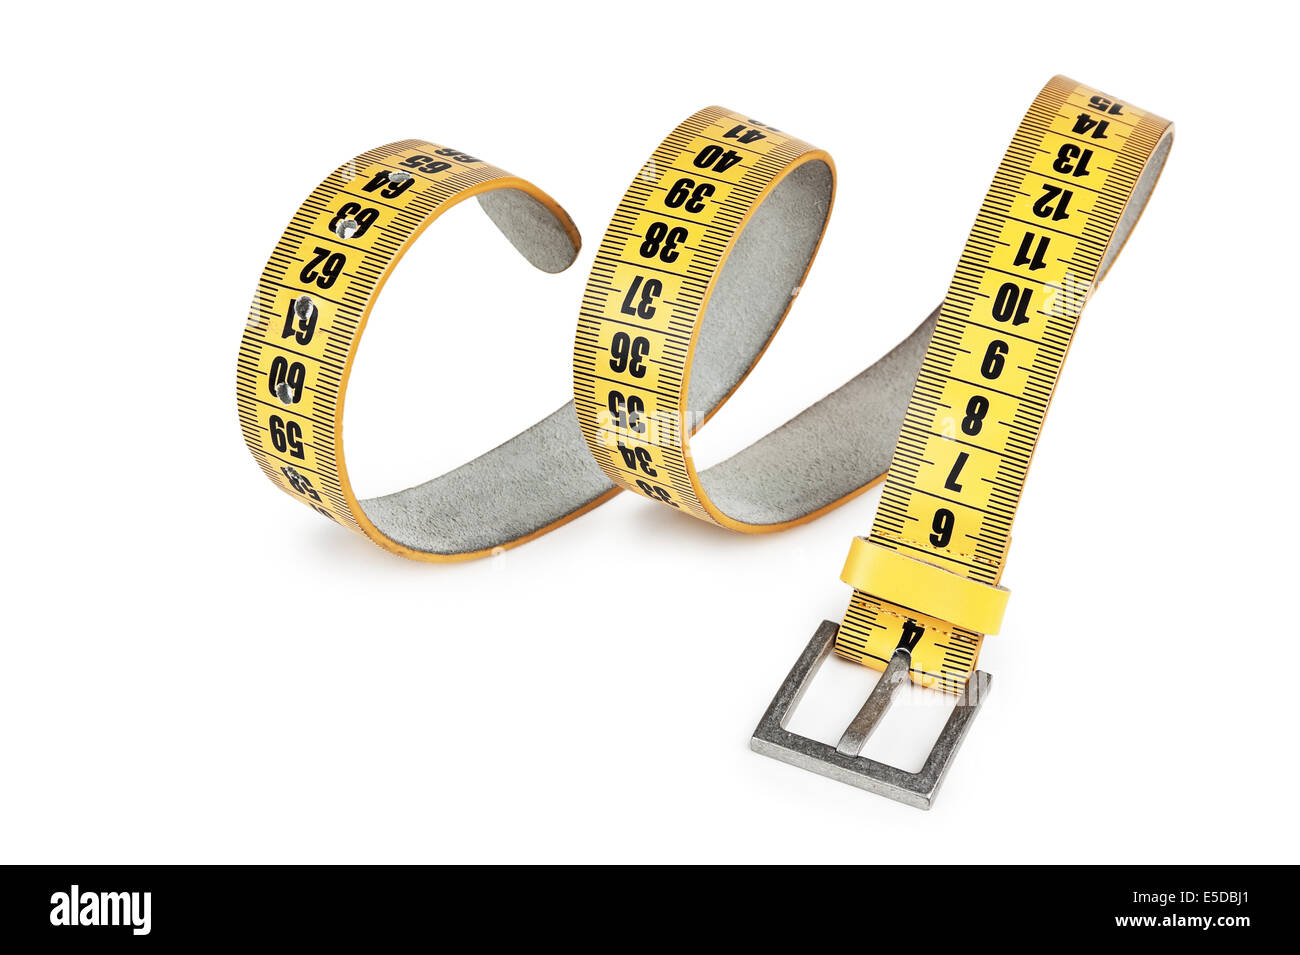 meter belt slimming isolated on a white background - Stock Image